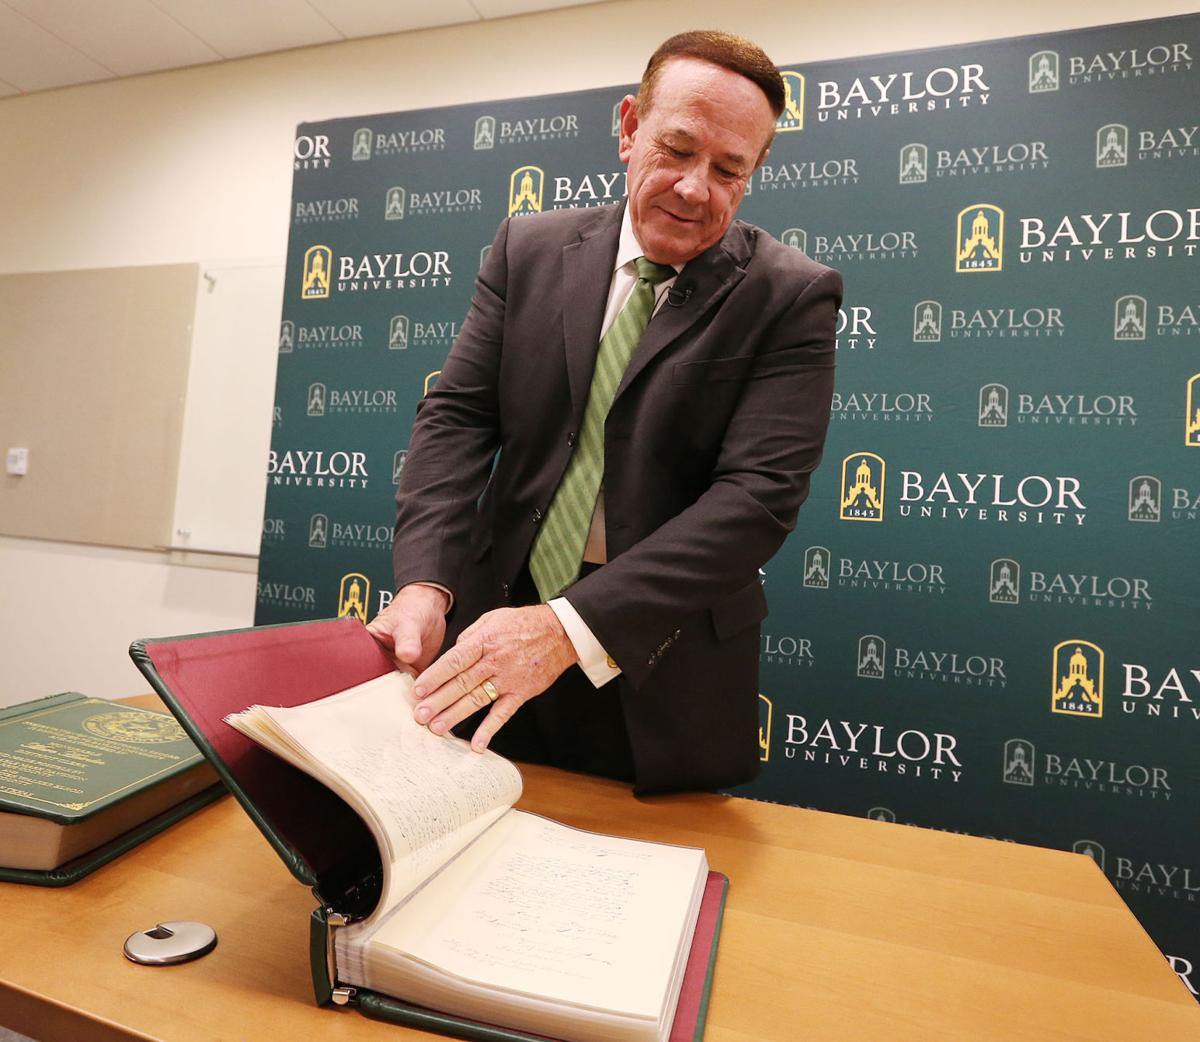 Baylor old documents